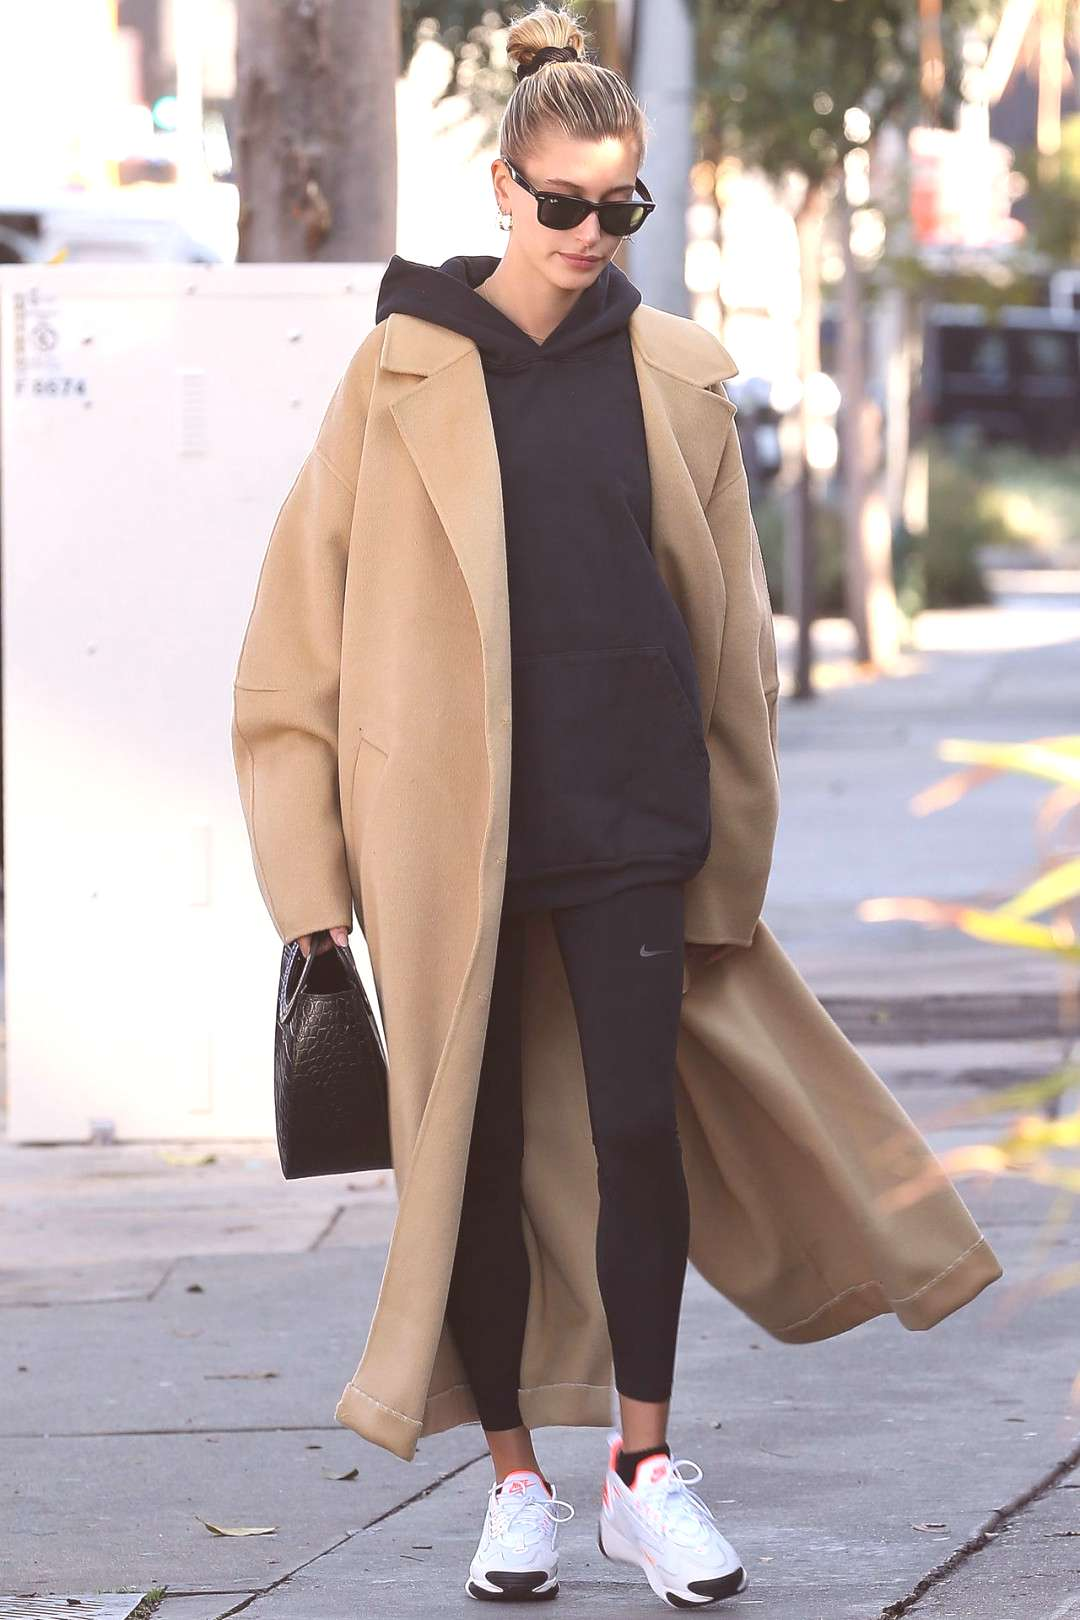 Hailey Bieber Out in Beverly Hills 12/09/2019. - Since electronic devices such a... - Hailey Bieber